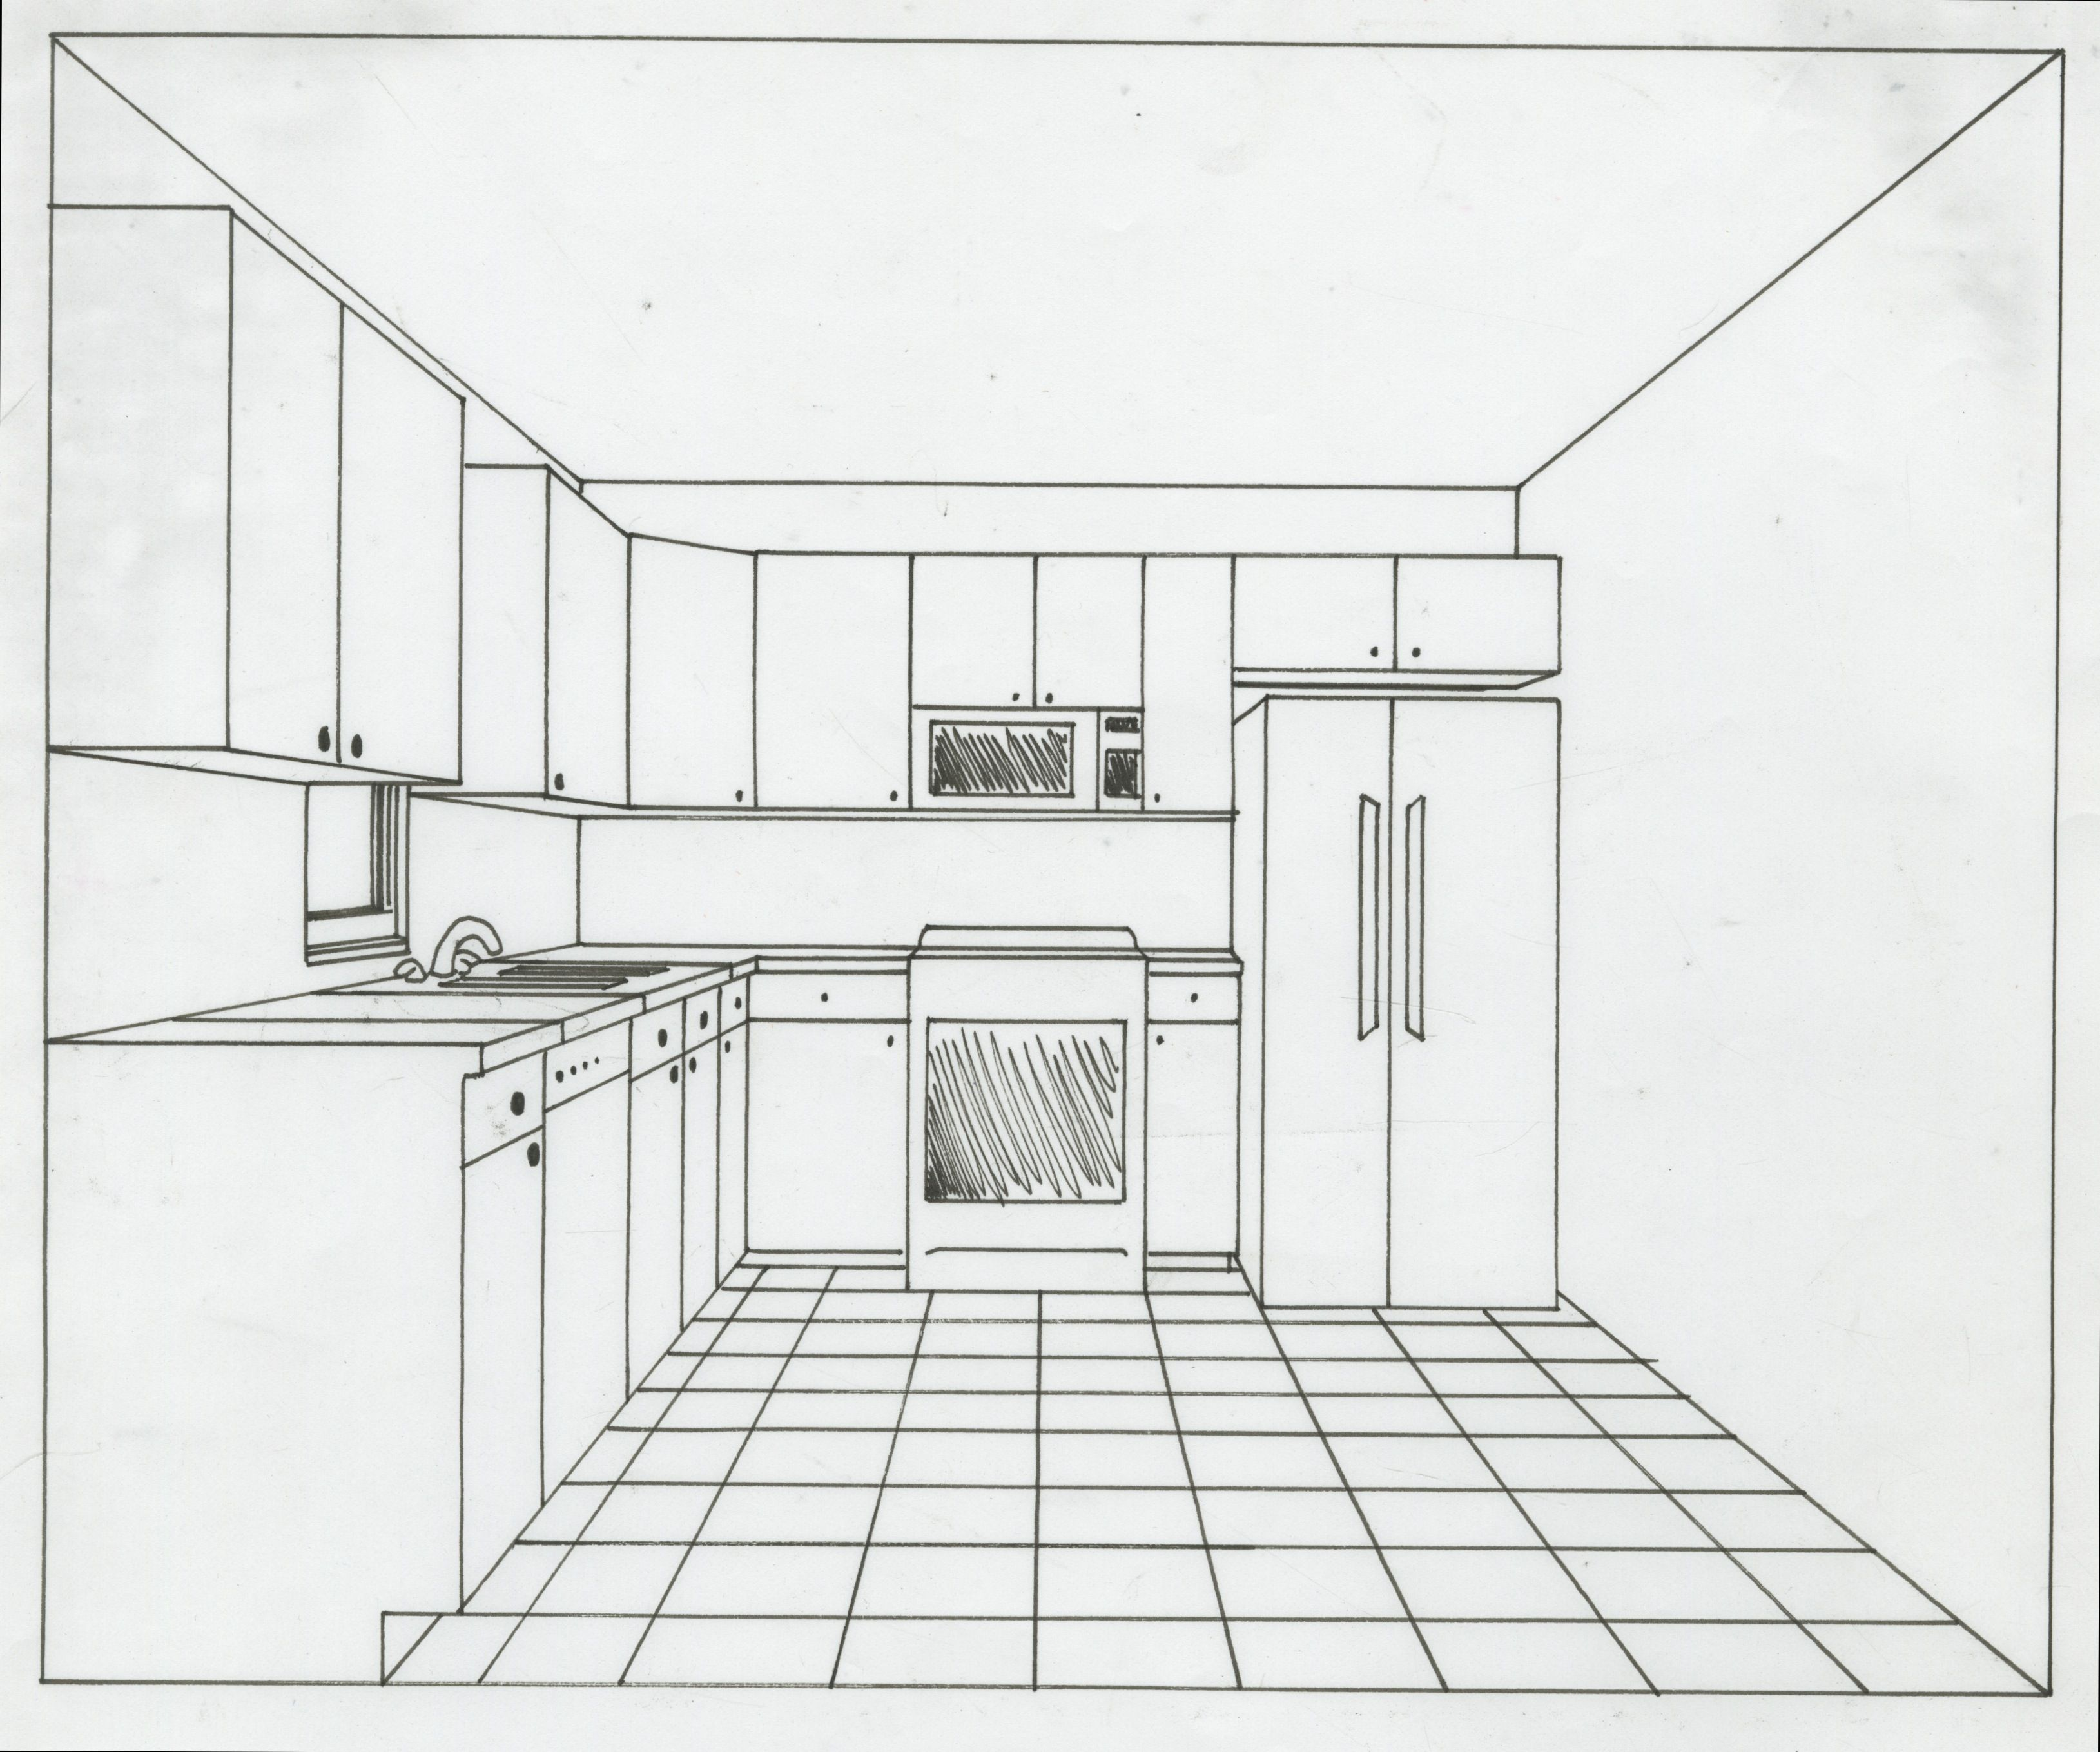 kitchen drawing perspective. Brilliant Kitchen 1pointperspectivekitchenjpeg 32582718 In Kitchen Drawing Perspective